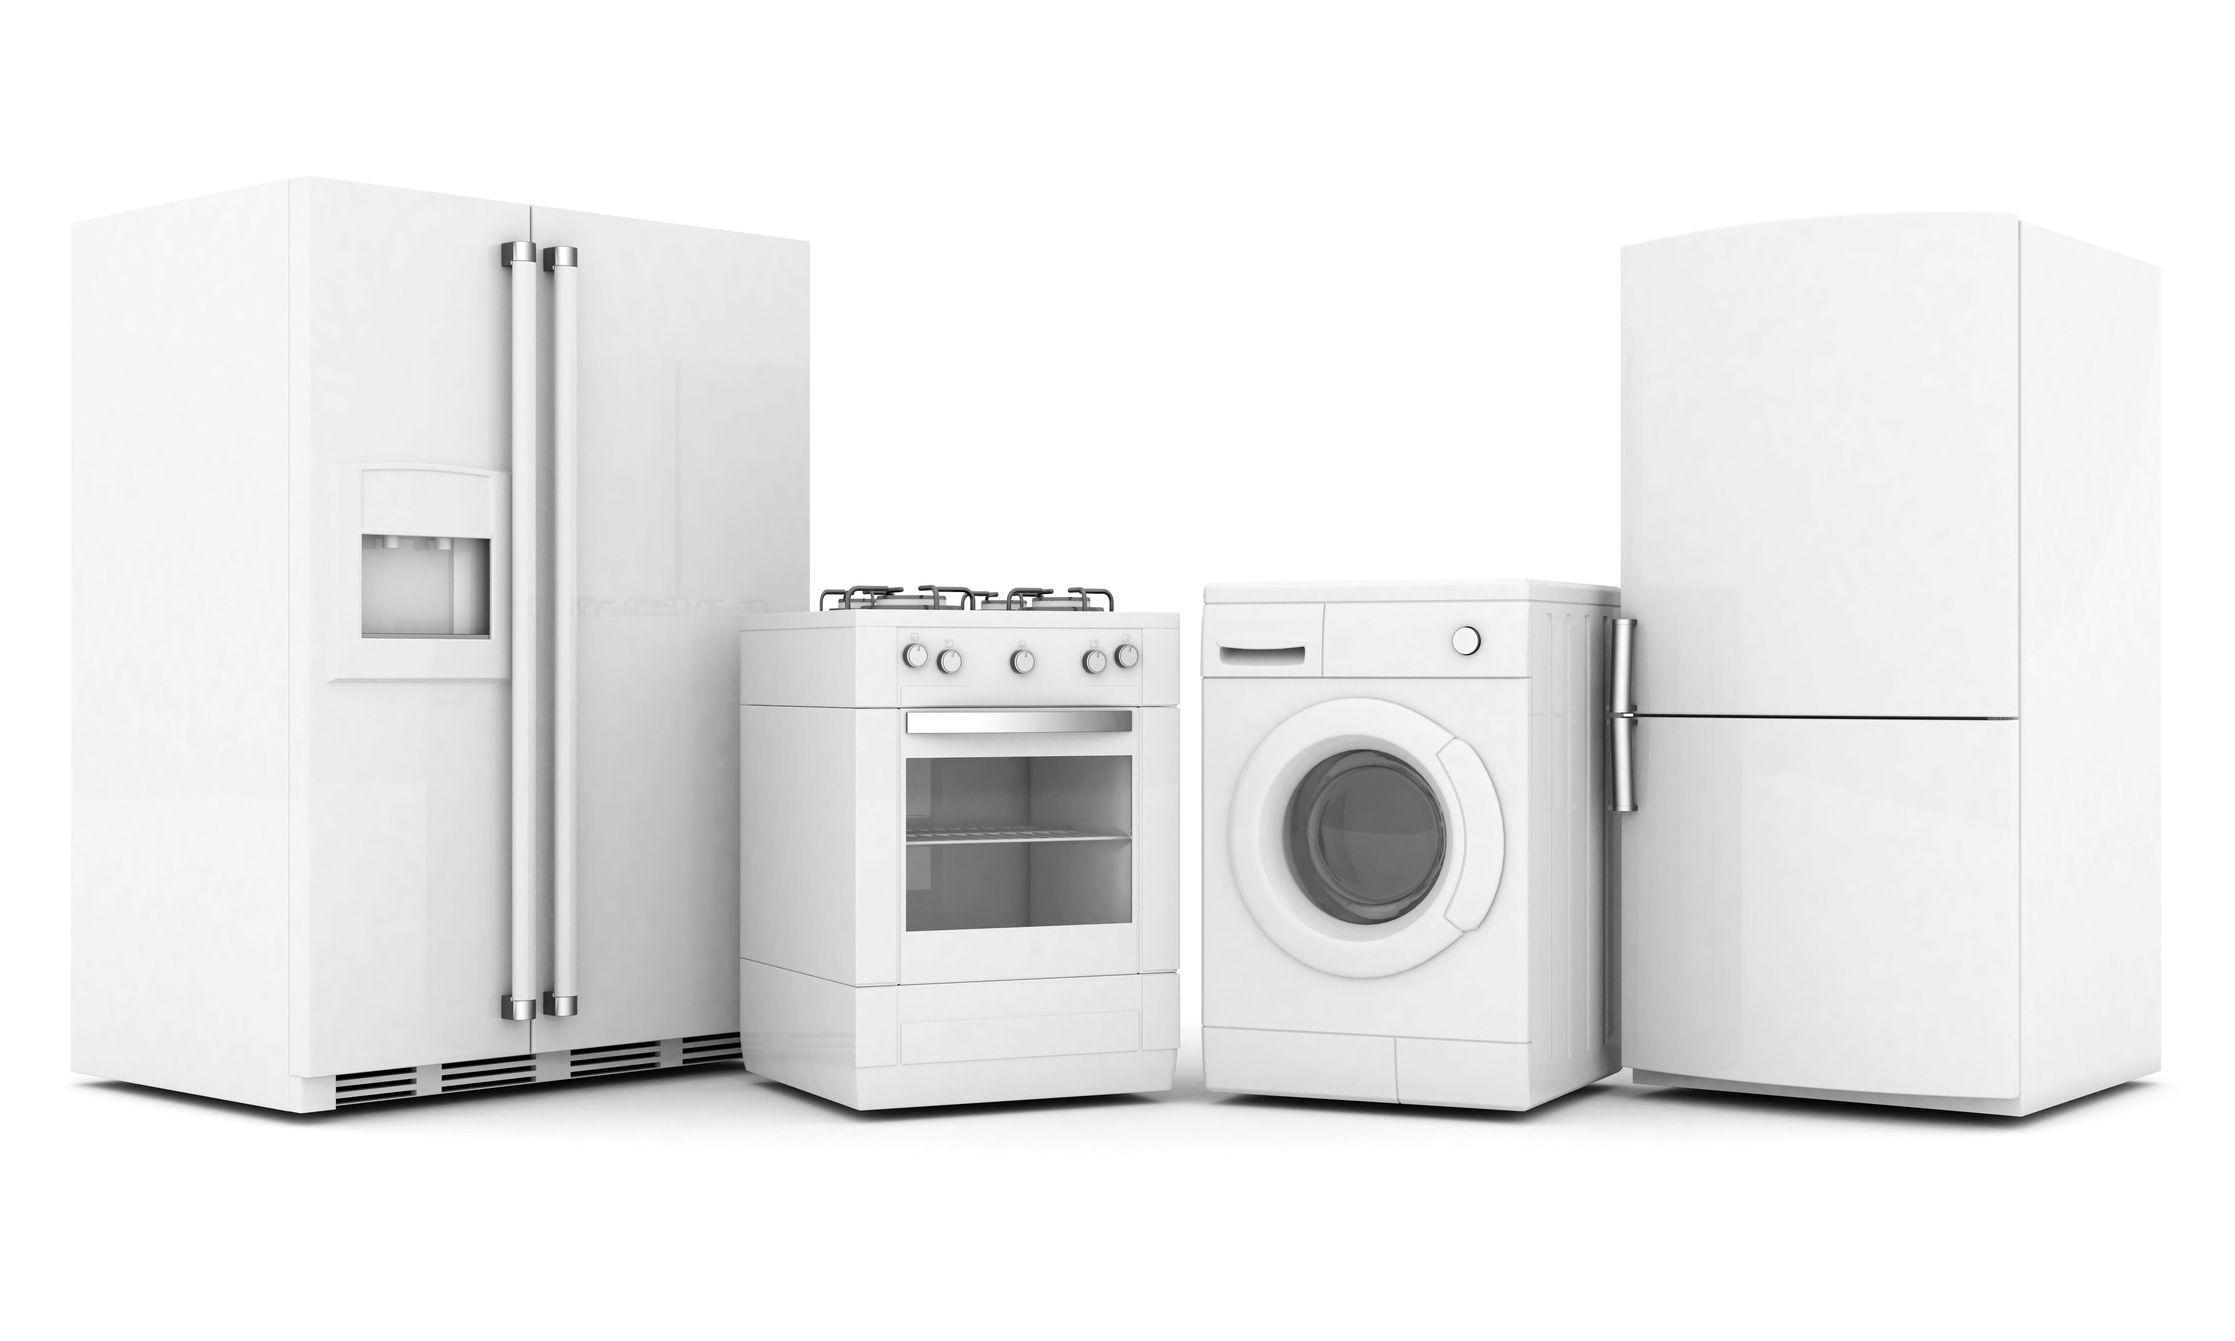 Appliance Repairs offers supreme quality servicing & repair of all